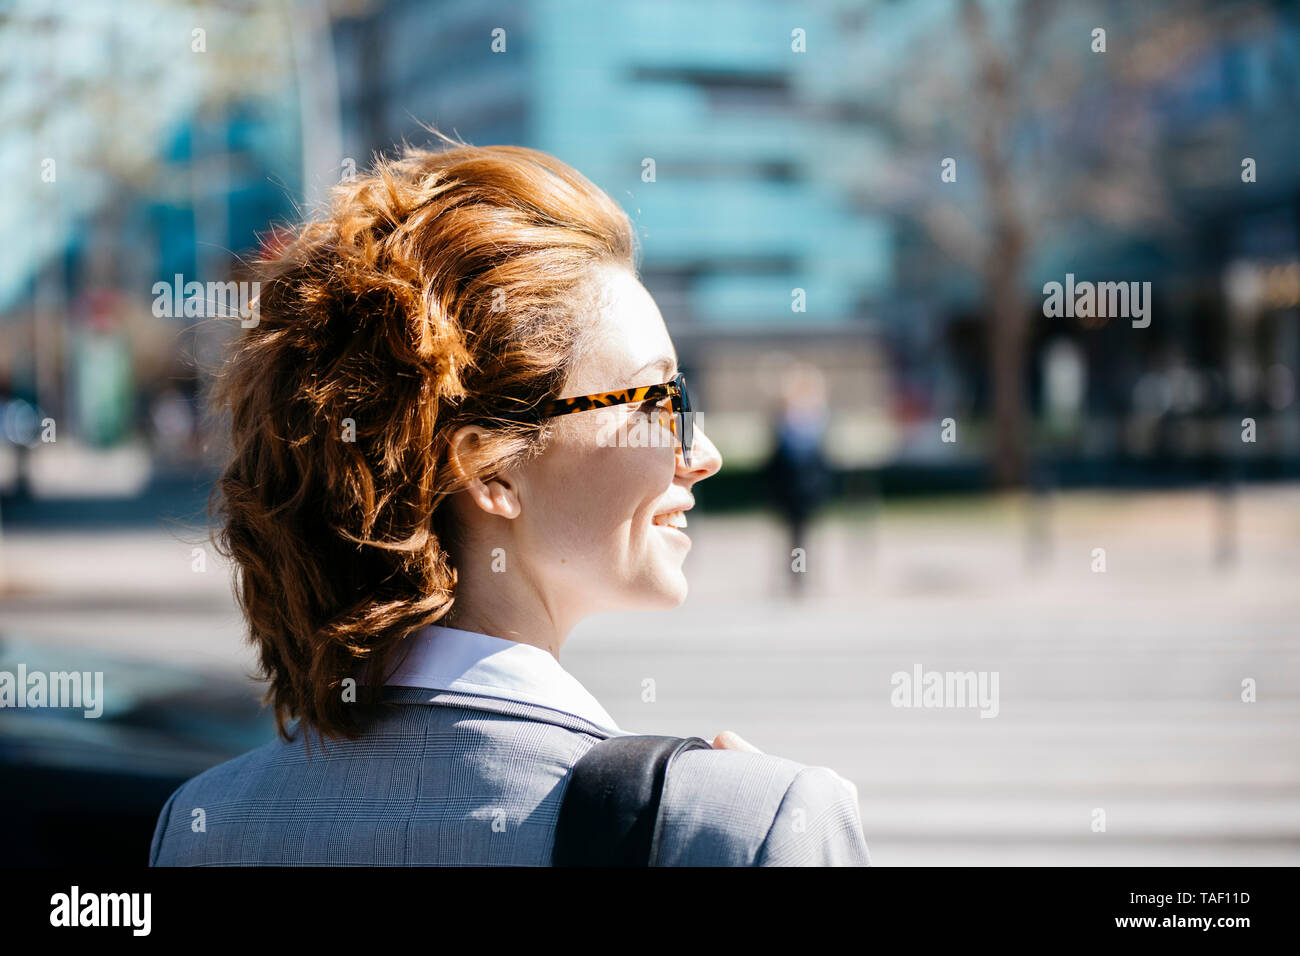 Rear view of a smiling businesswoman wearing sunglasses - Stock Image